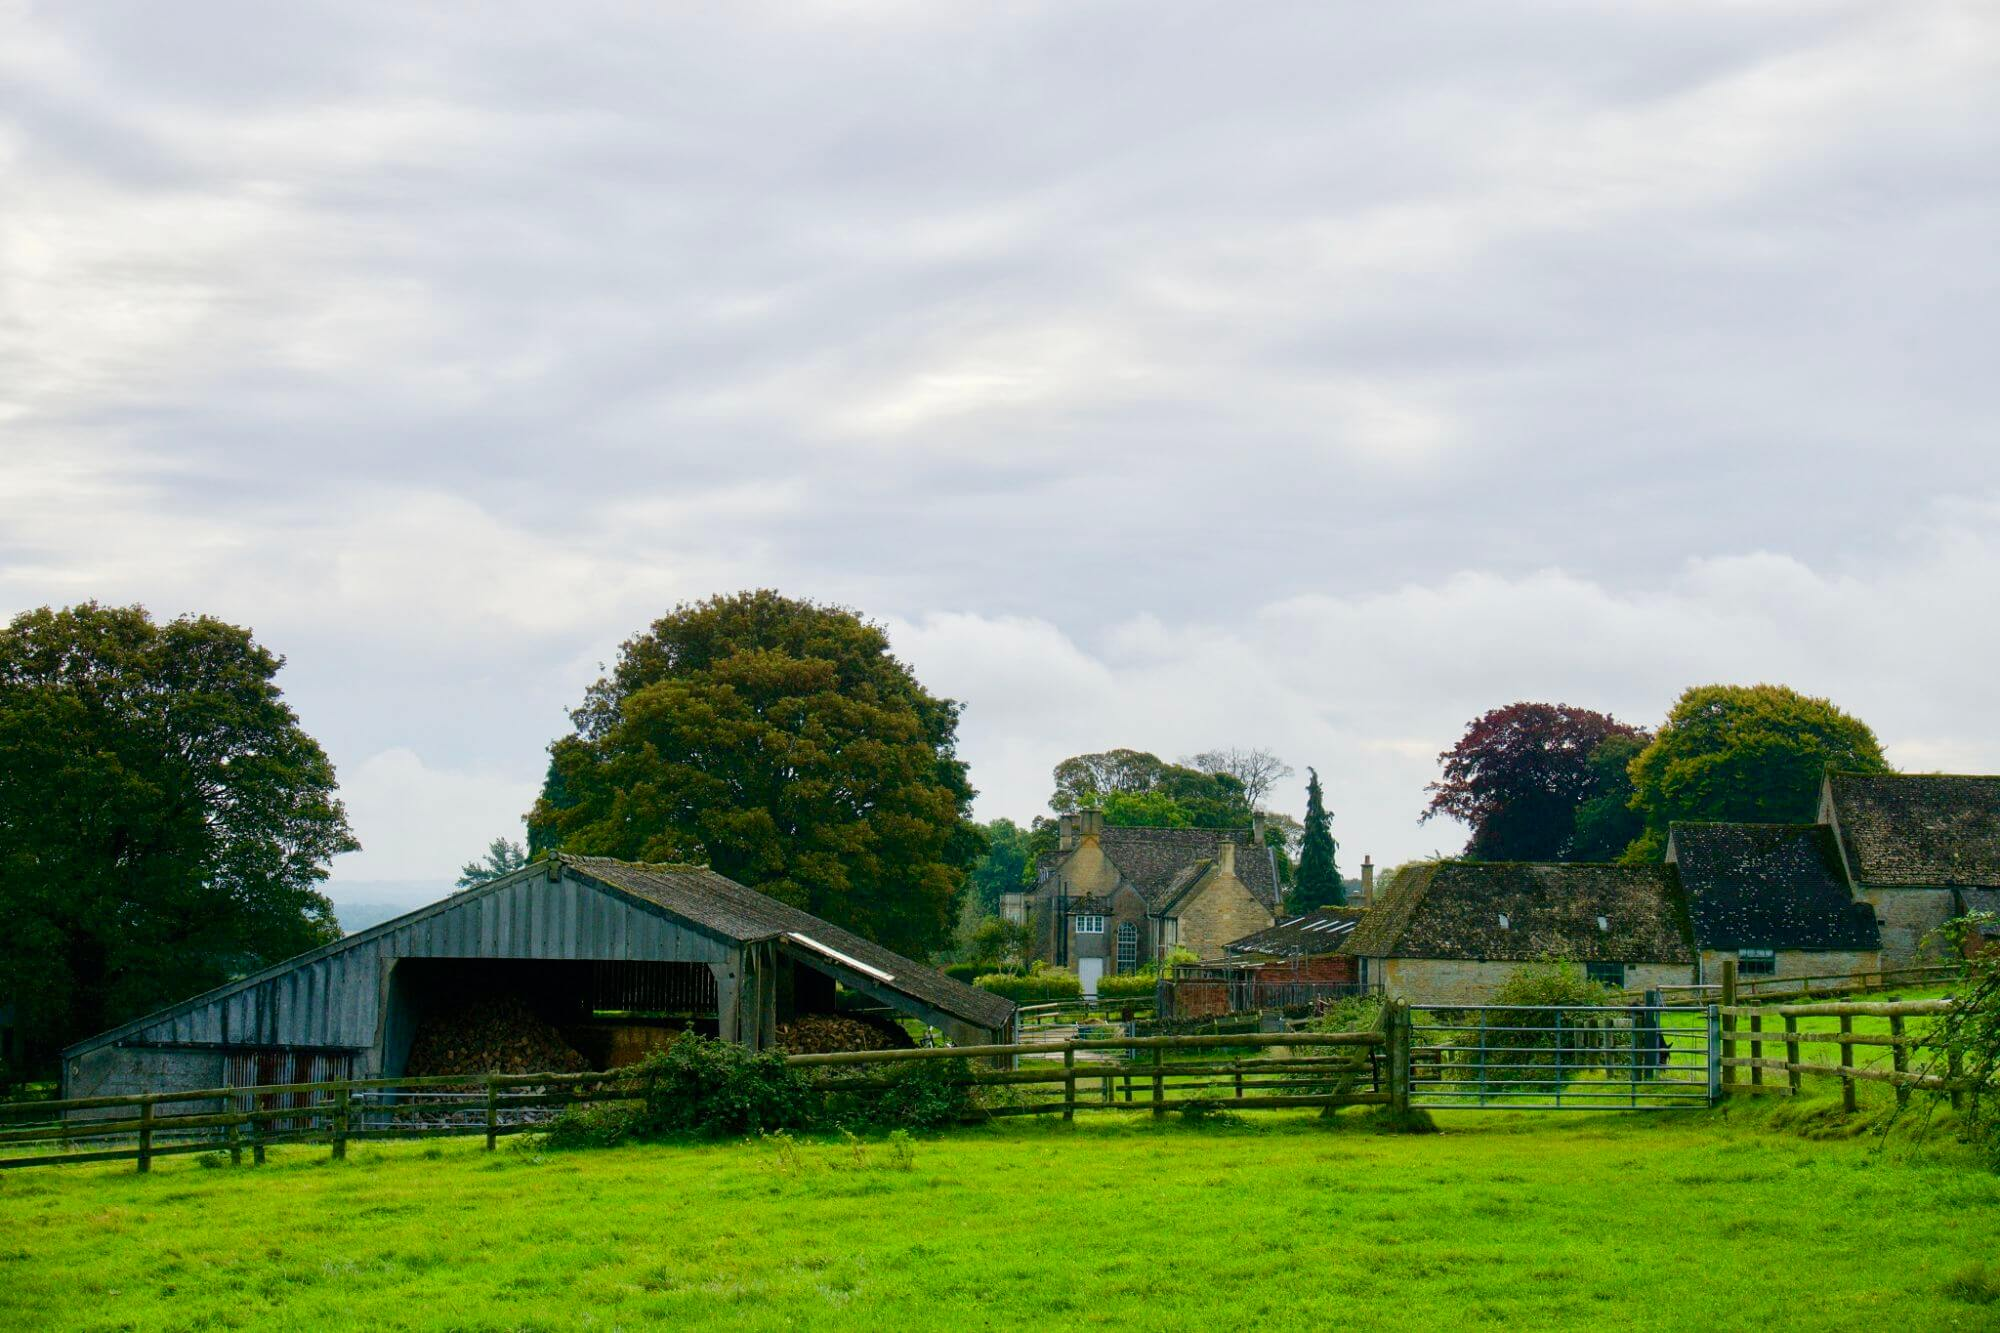 Farms and homes just outside of Moreton-in-Marsh